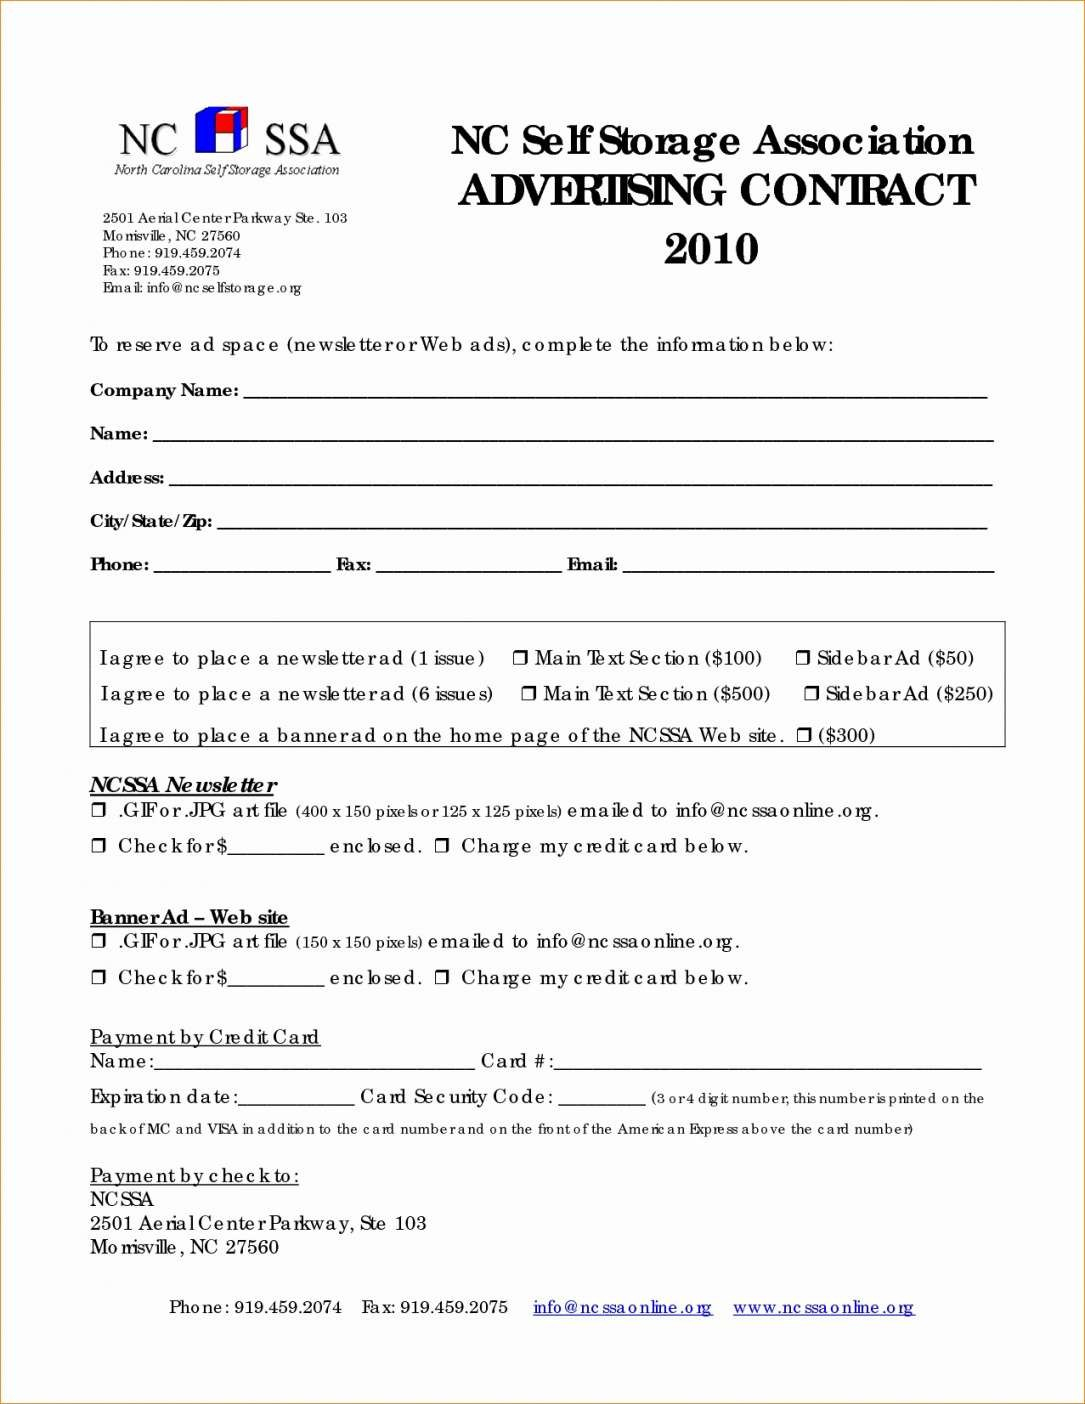 Example Of Online Advertising Agreement Template Free From Our With Free Online Advertising Agreement Template